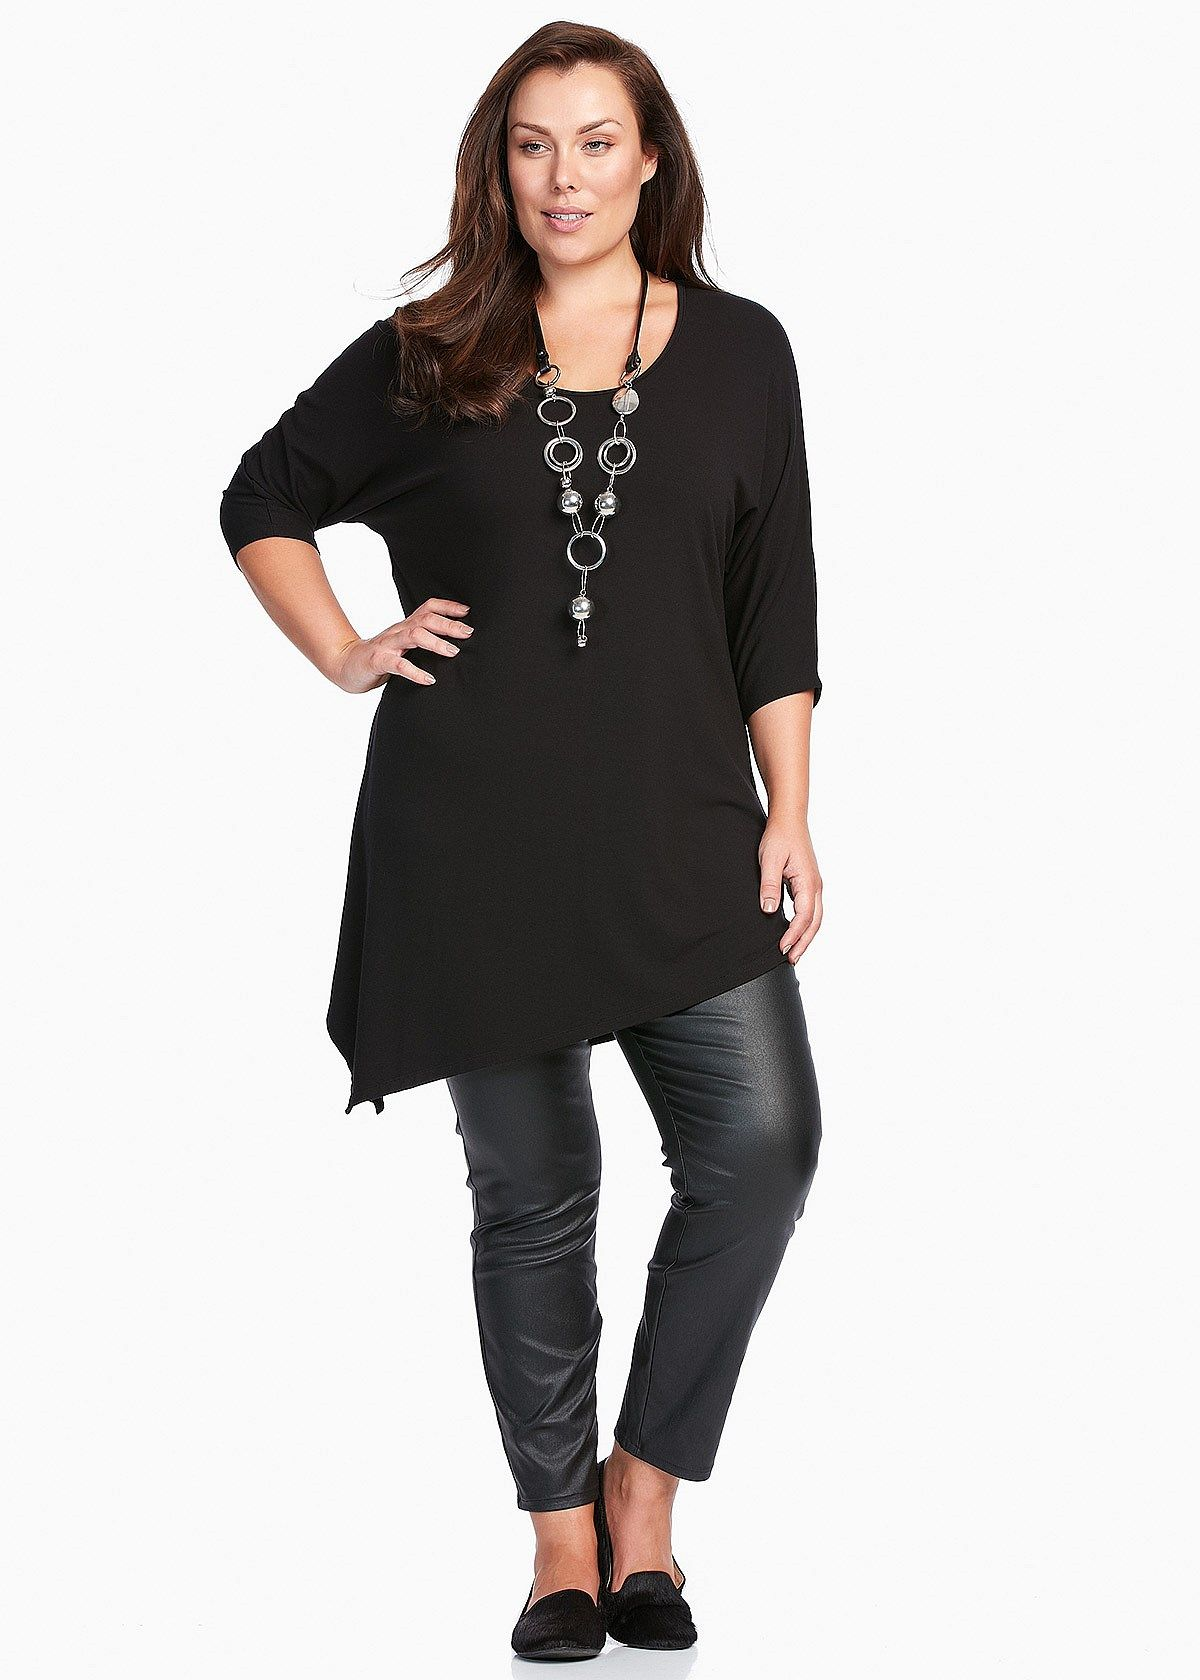 step out in style in the latest plus size women's tunics